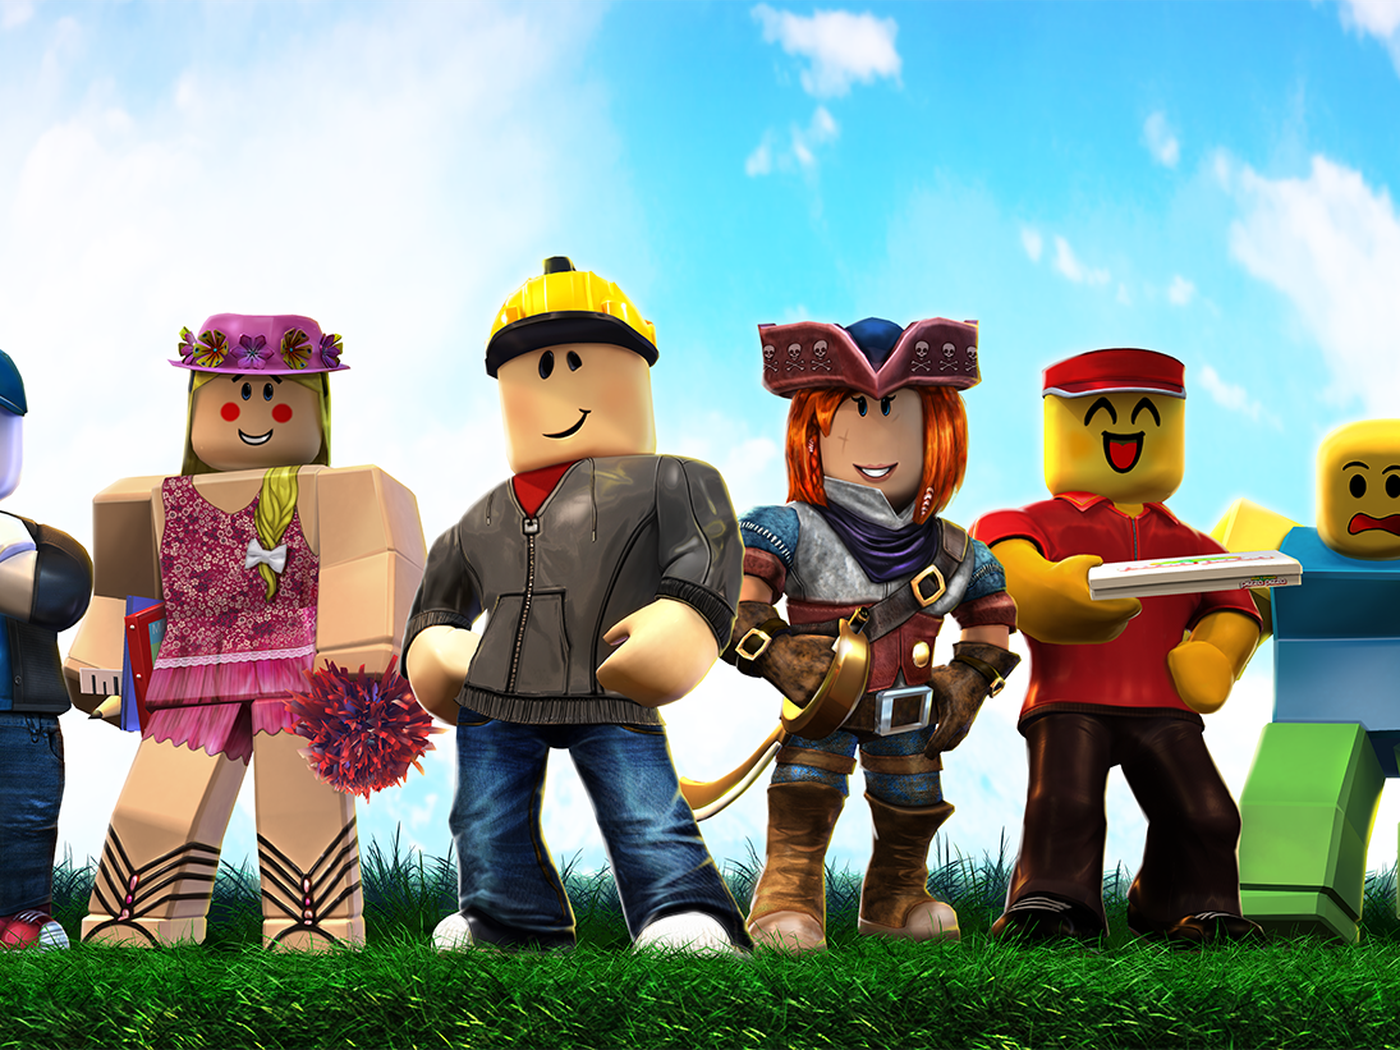 Roblox Surpasses Minecraft With 100 Million Monthly Players The